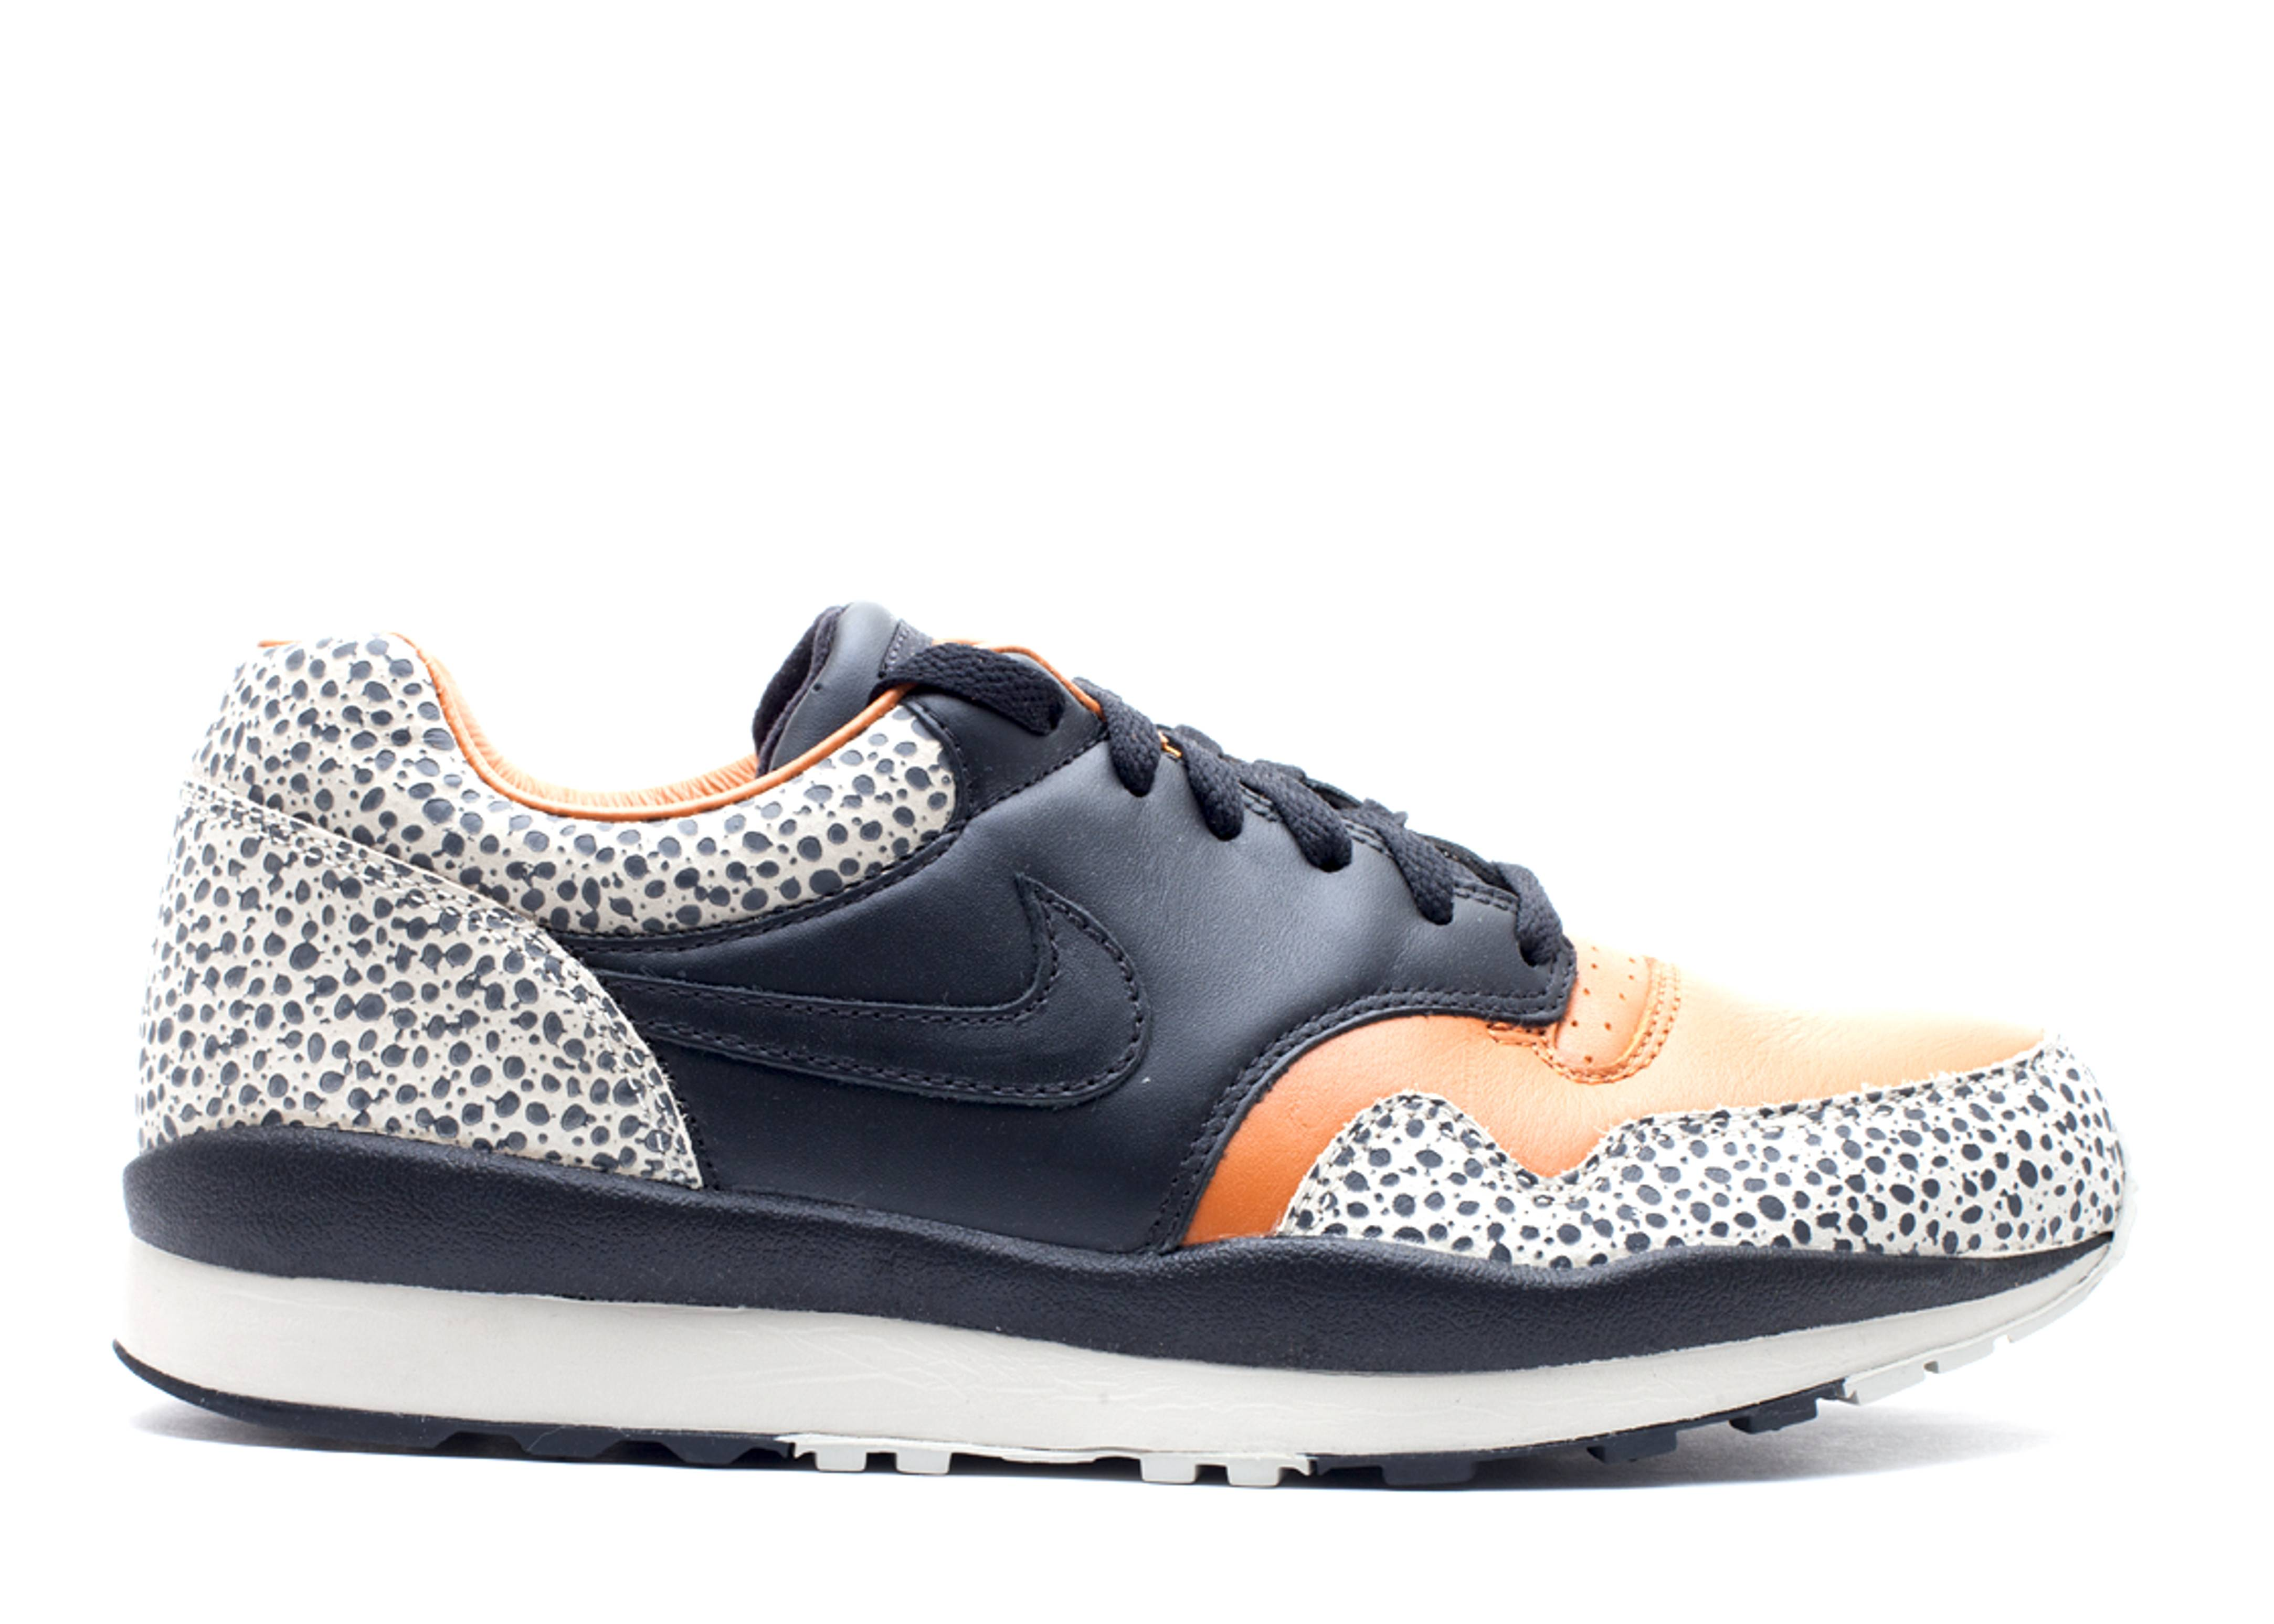 new styles 50bb0 0aa8a nike. air safari nrg